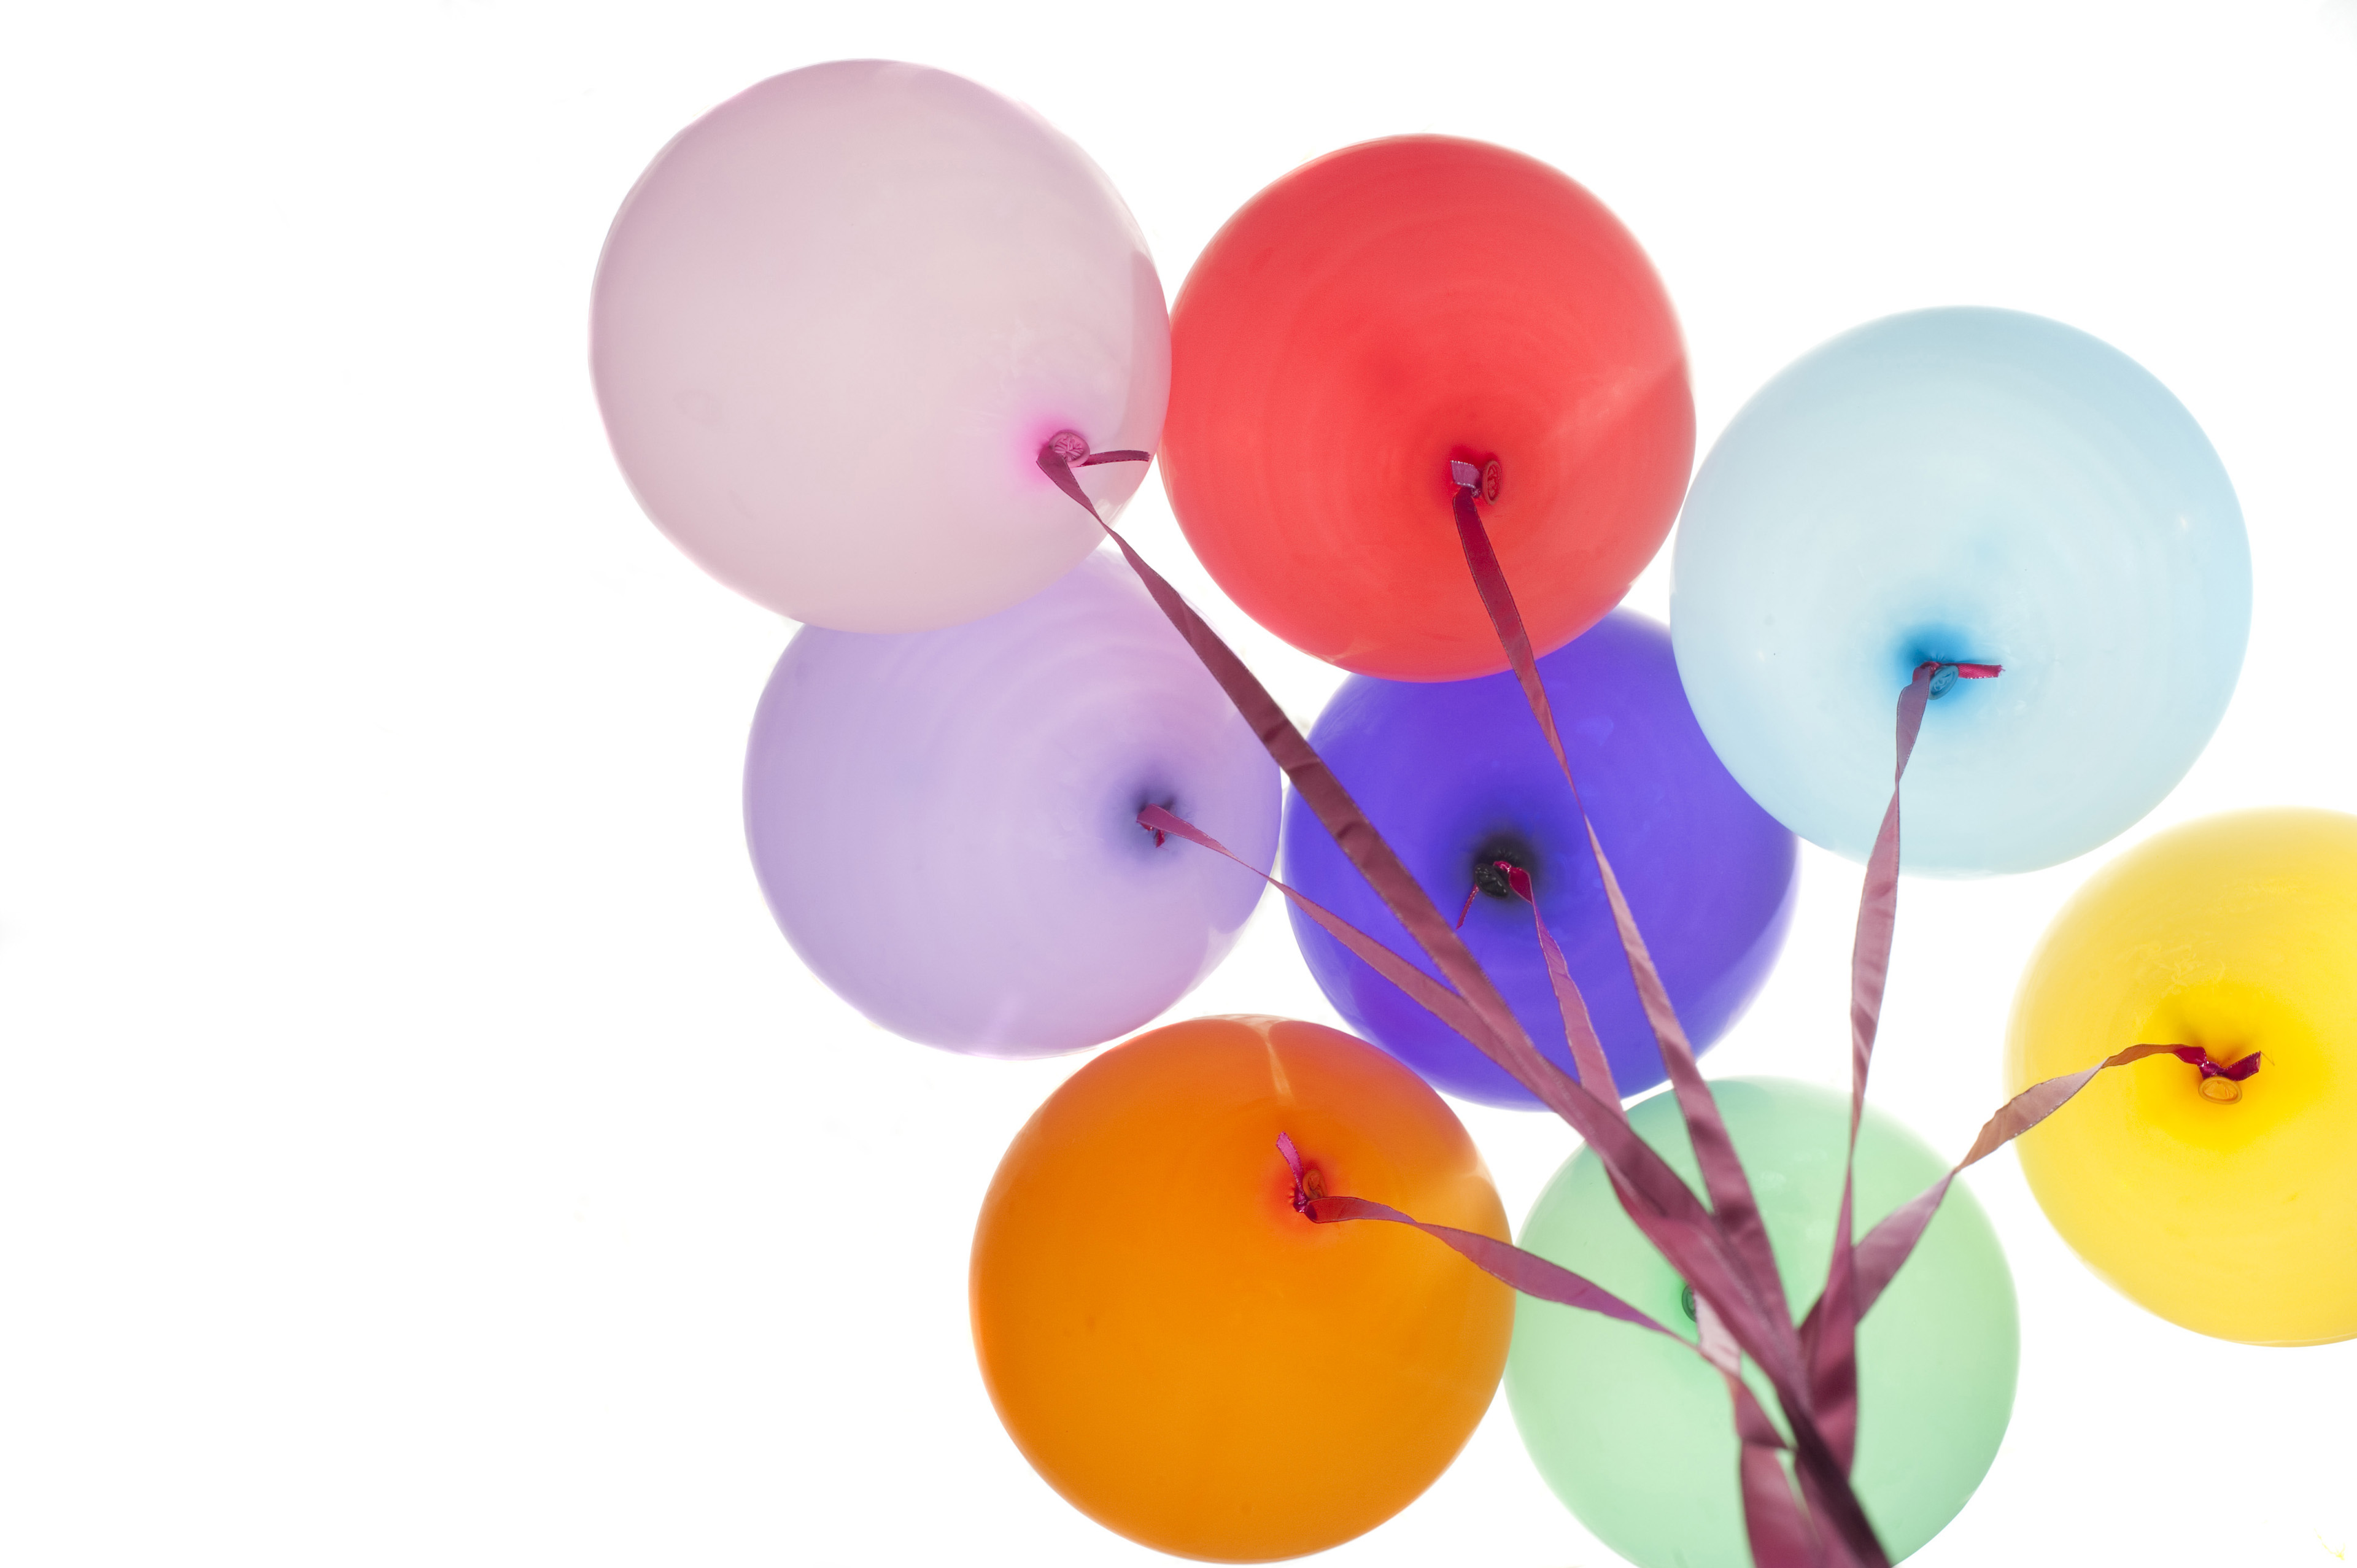 Close up Tied Plain Colored Balloons Isolated on White Background, Emphasizing Copy Space.